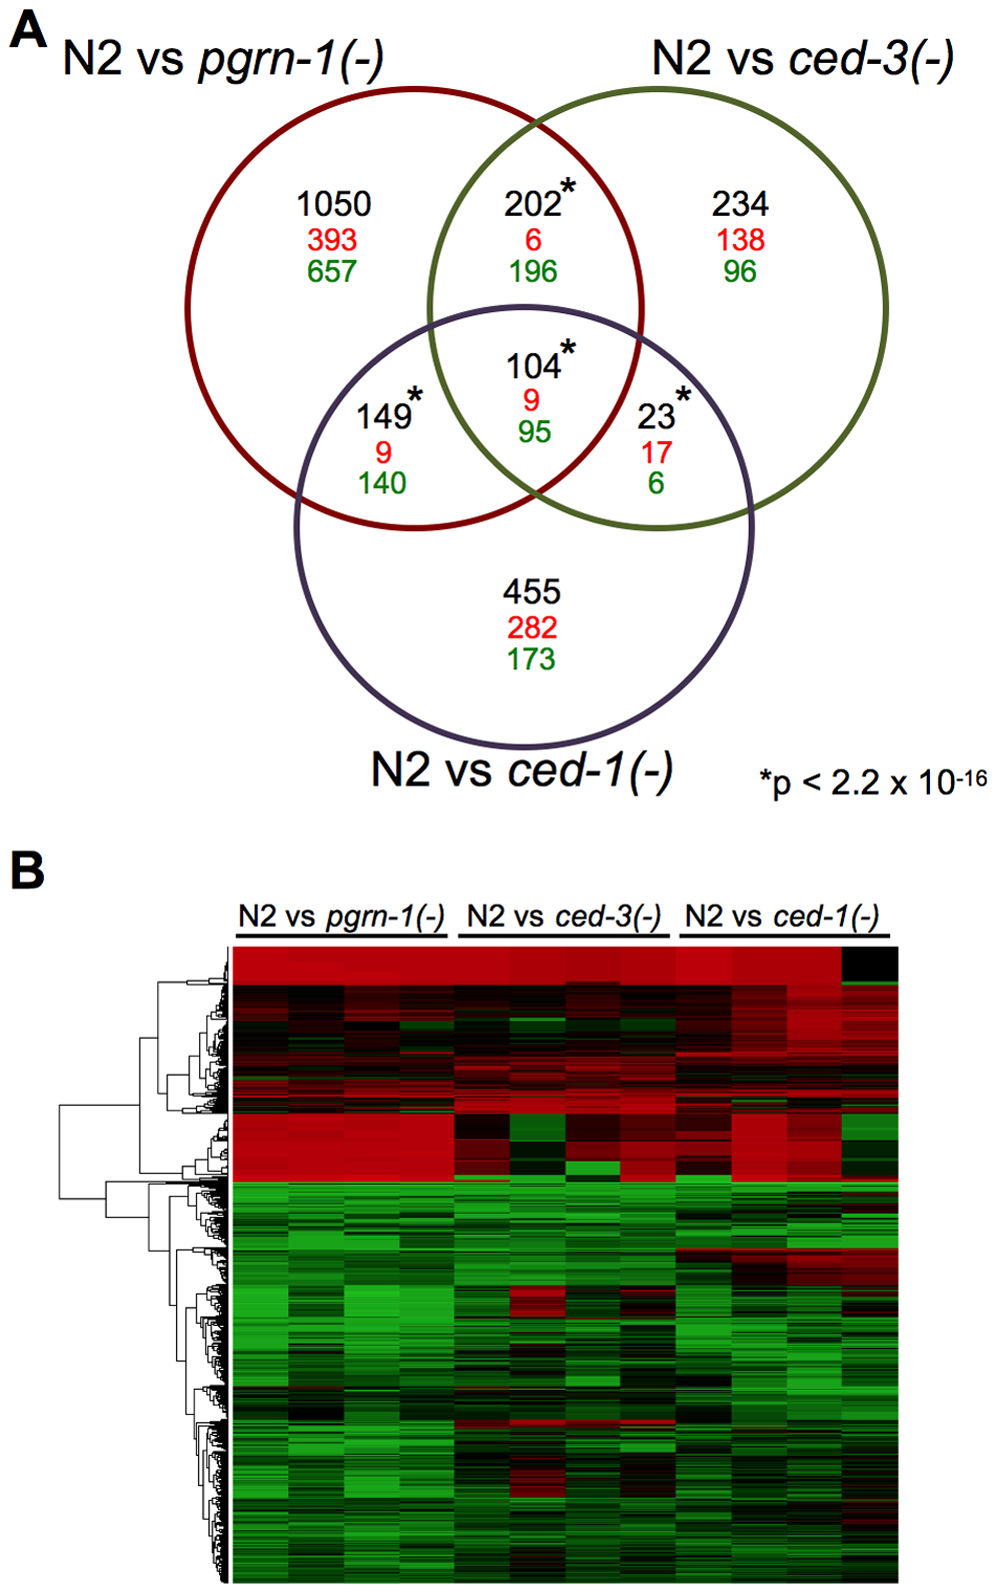 Programmed cell death mutants share differentially regulated genes.